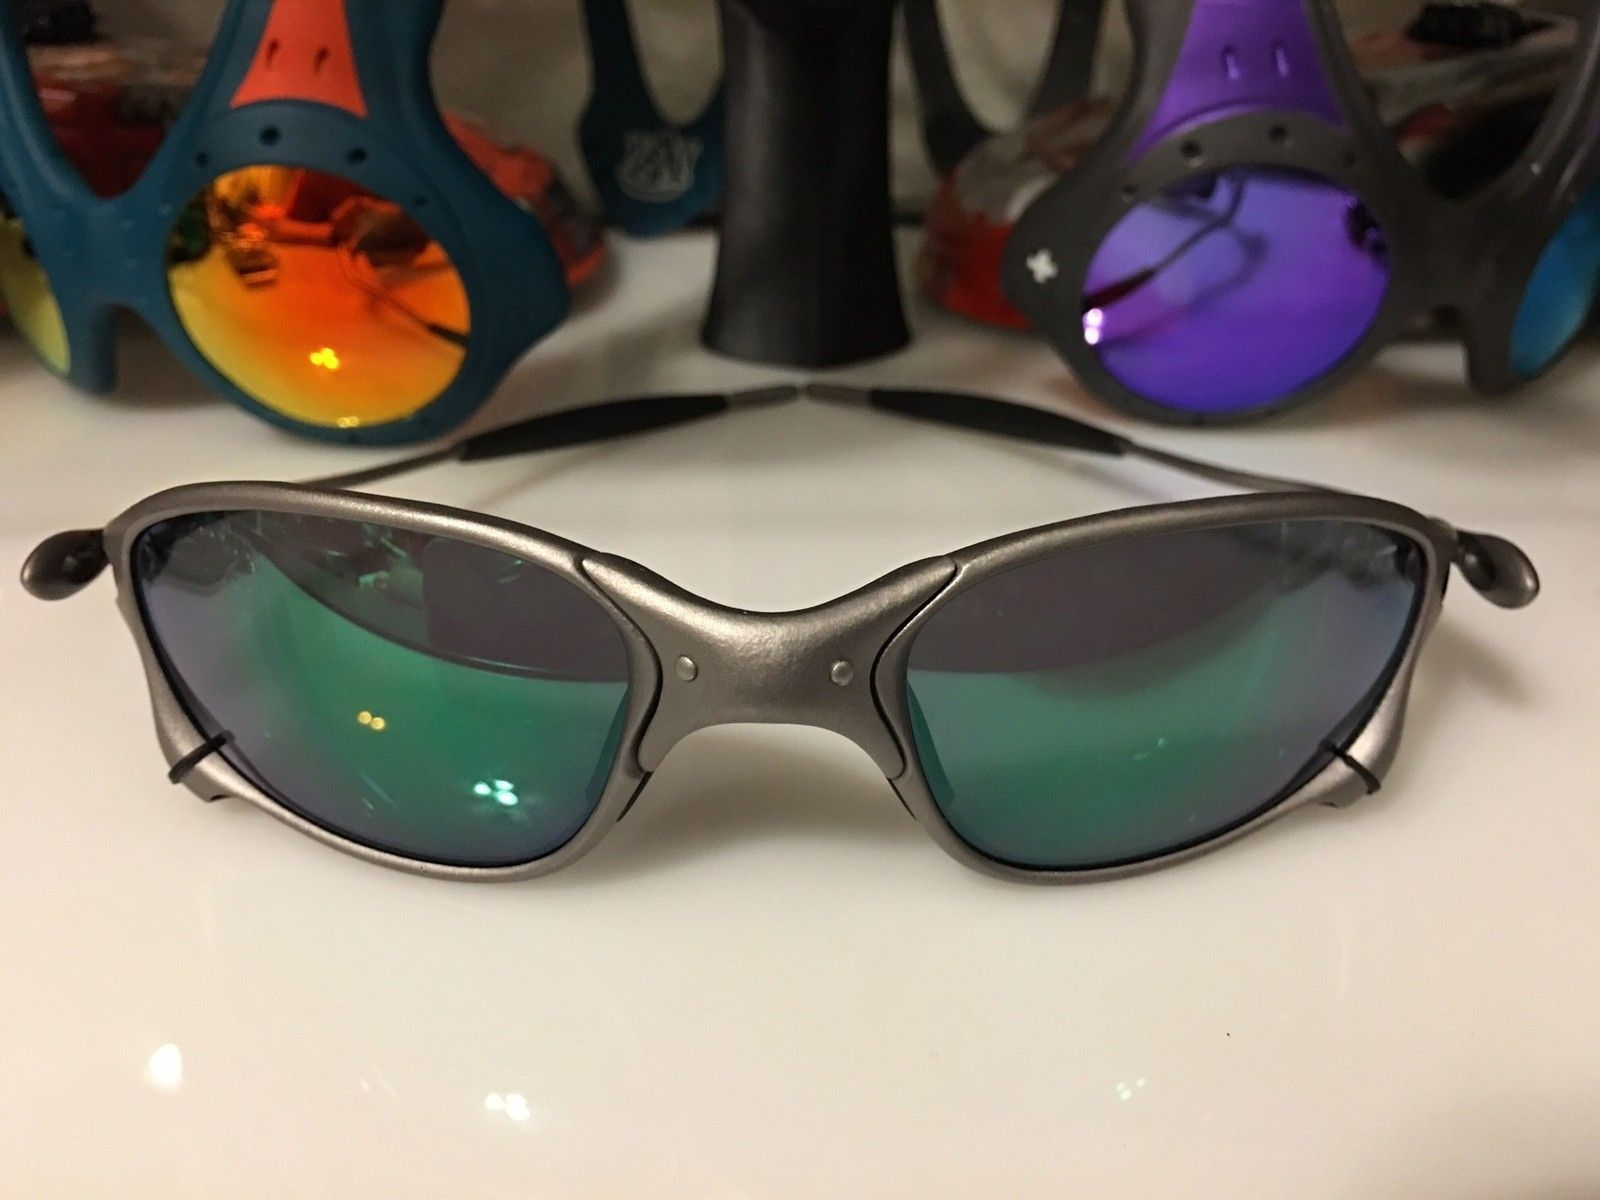 Two Pairs of XX (X-Man Plasma Refinish) with Lens Options - IMG_8441.JPG